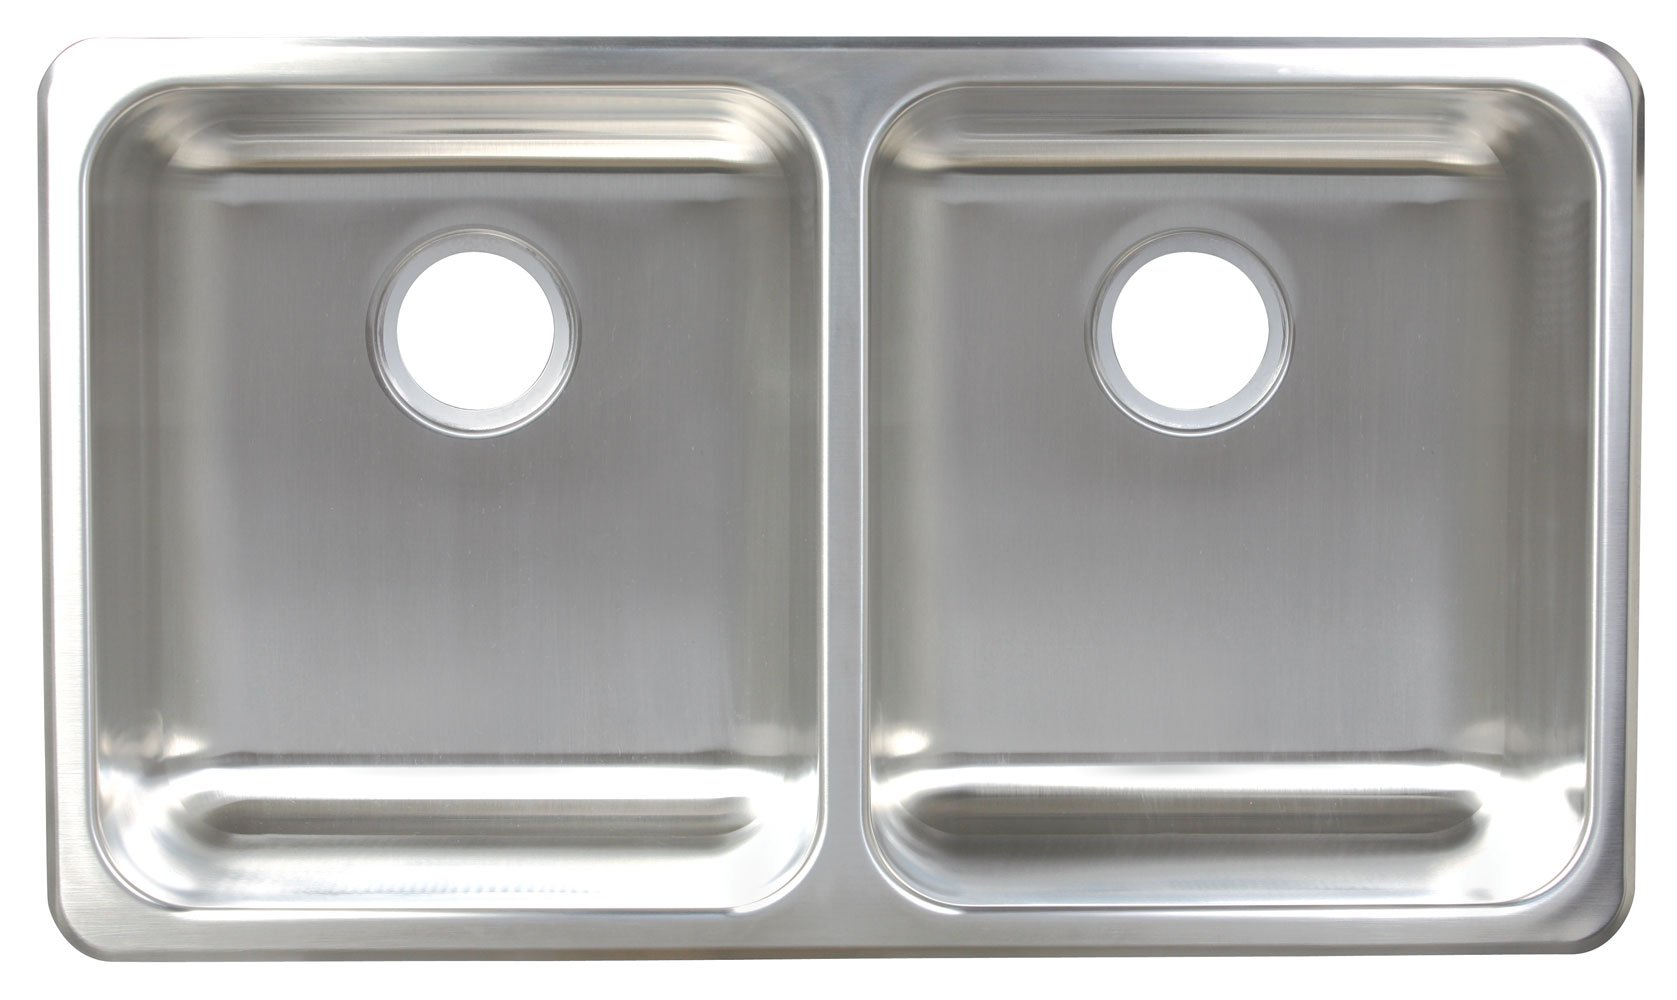 Franke A1933/9 Double-Bowl Dual Mount Kitchen Sink, Stainless Steel